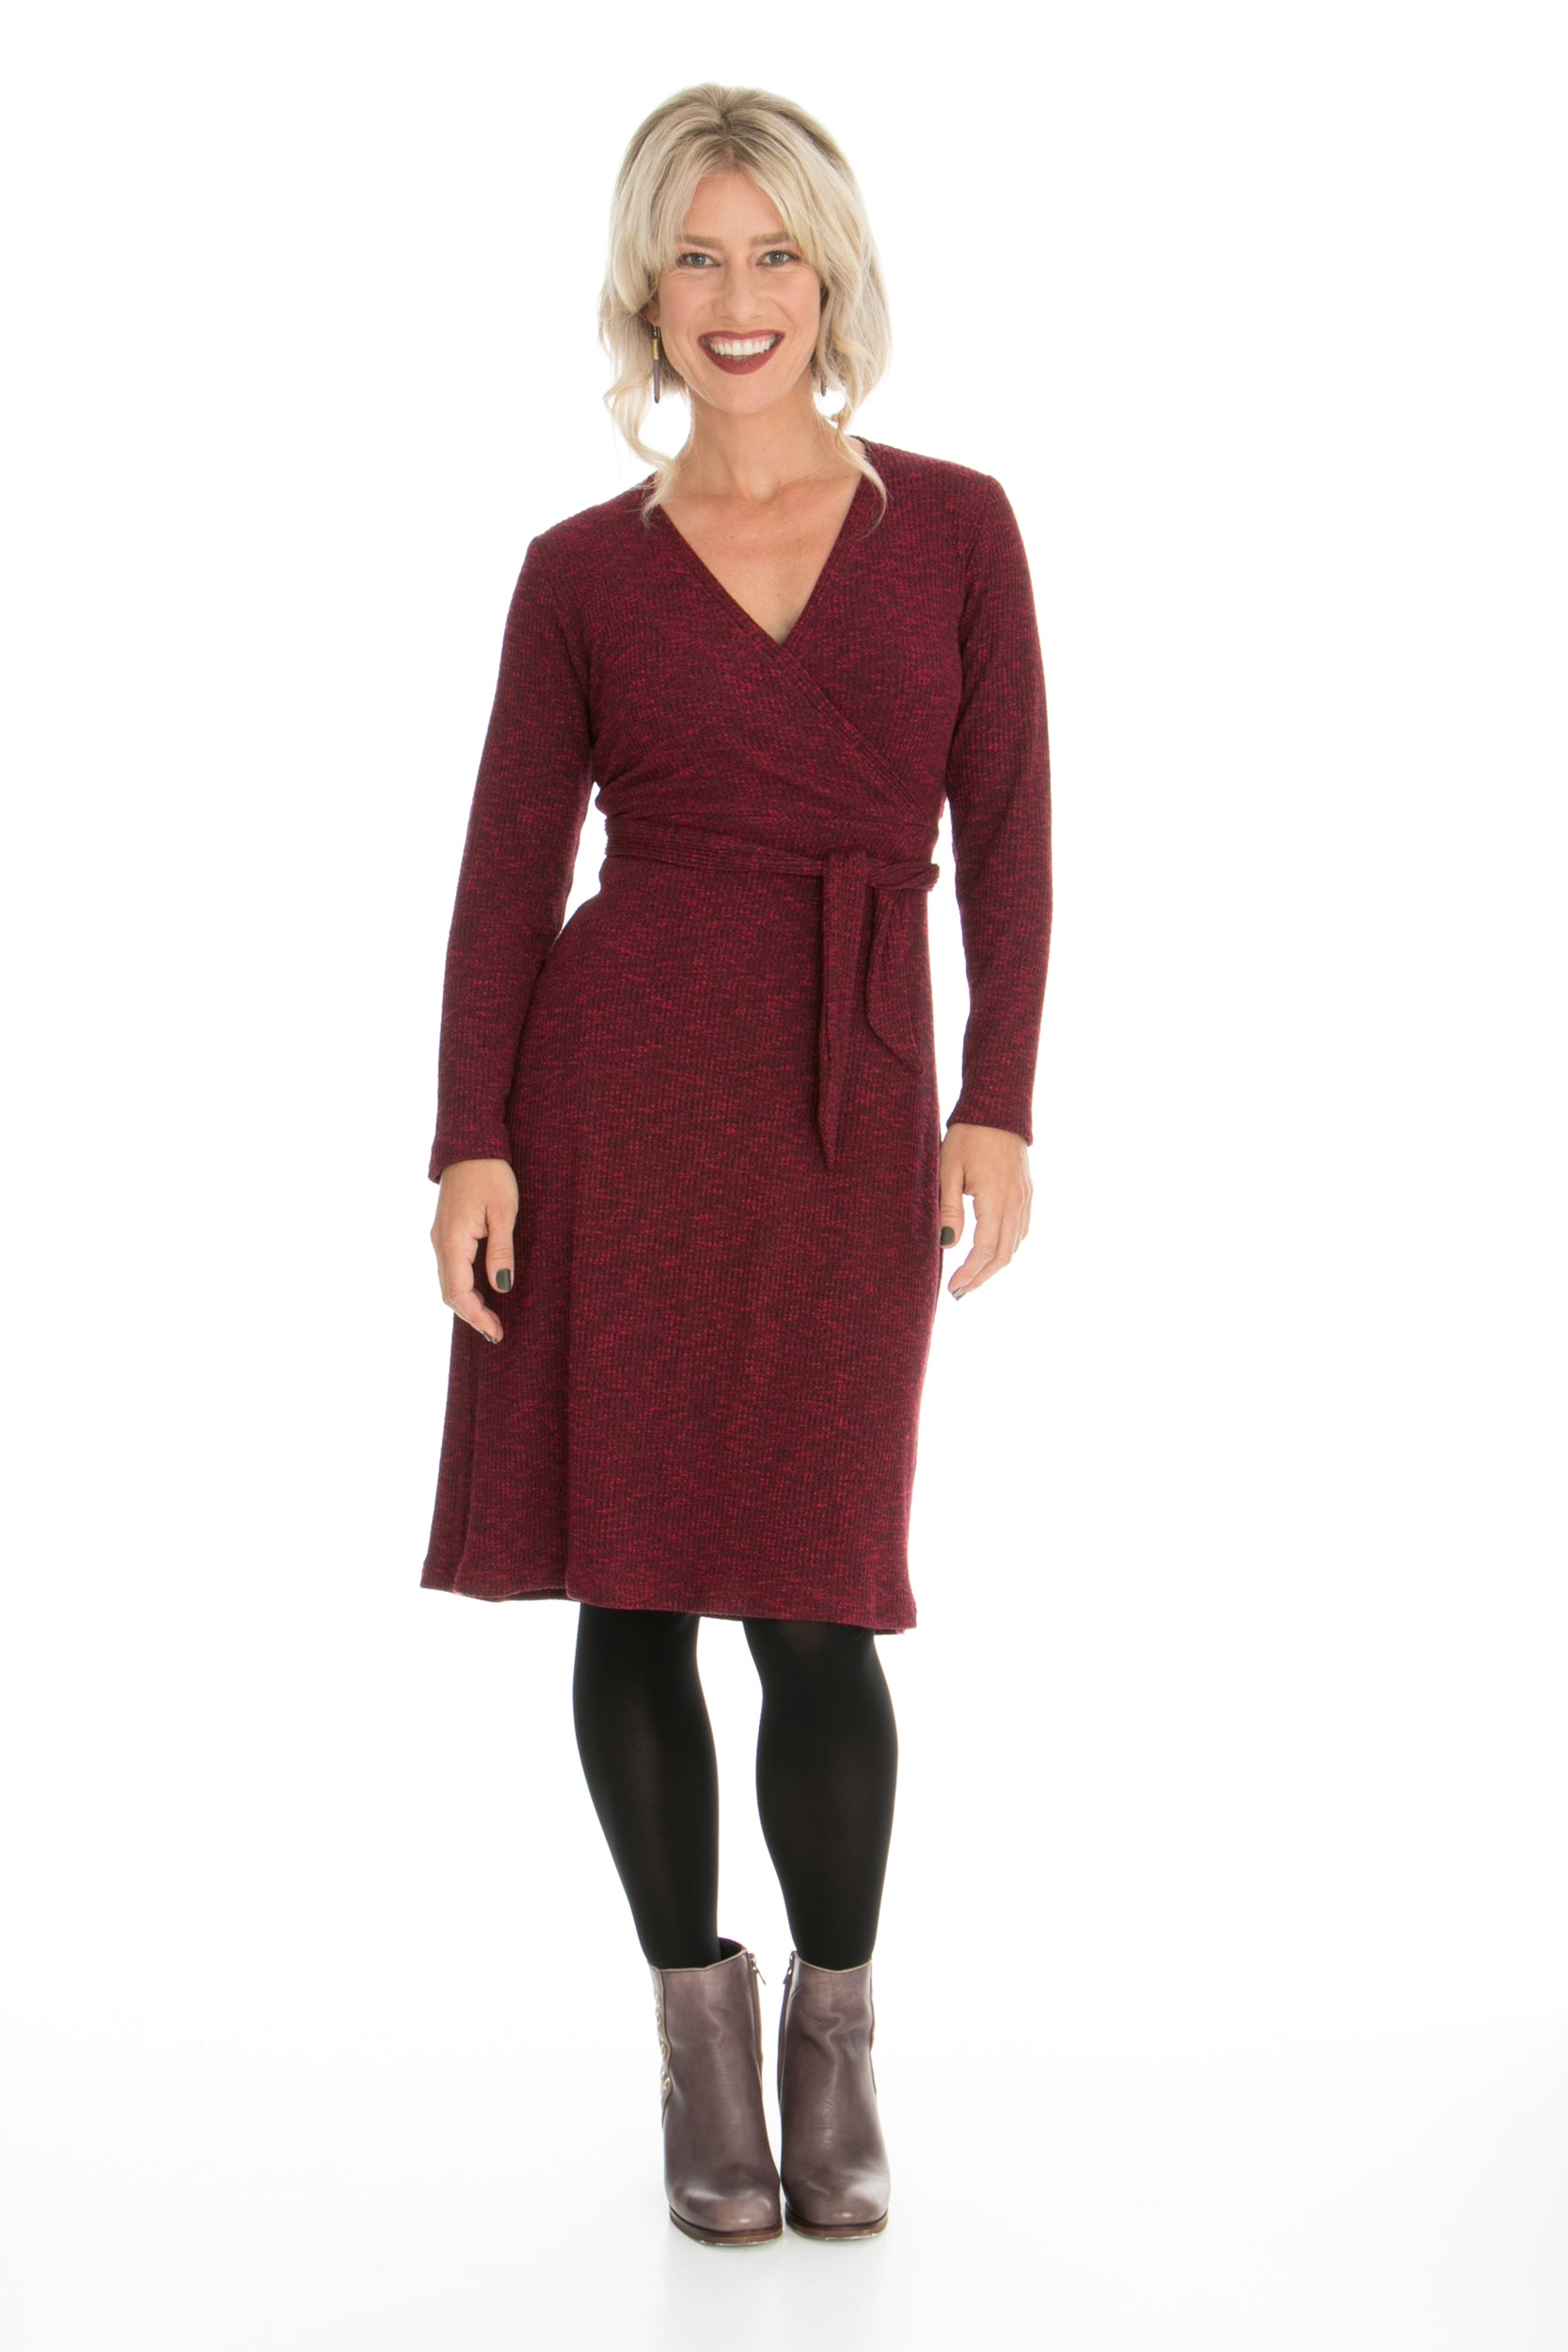 Vesta Faux Wrap Dress - Rouge Lurex Knit was $228 now $198